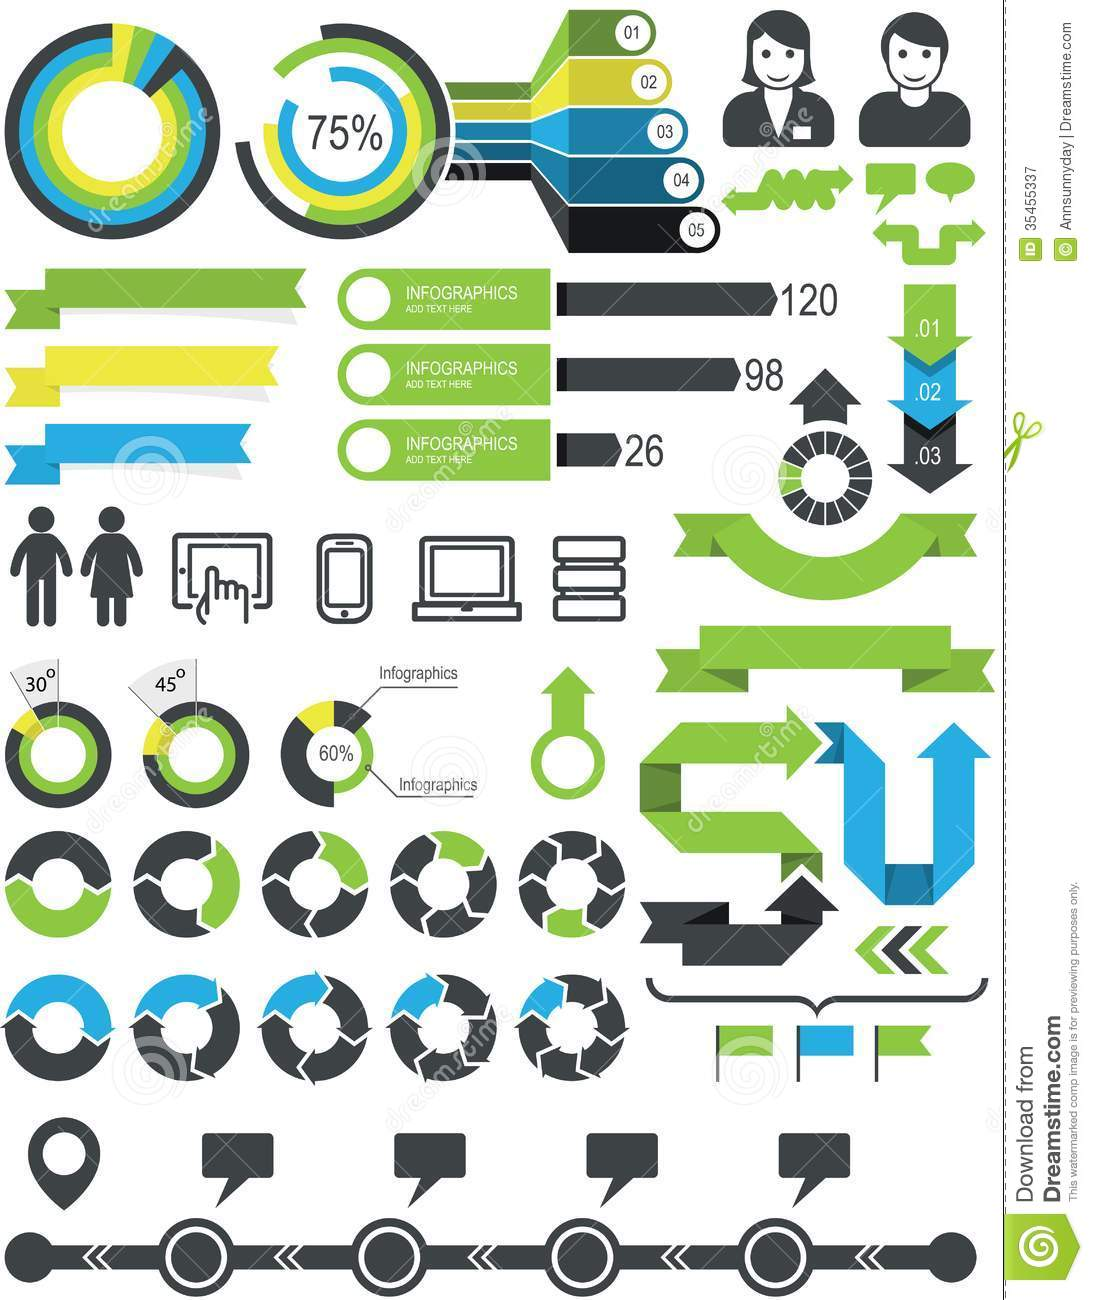 Infographics And Statistic Elements Royalty Free Stock ...